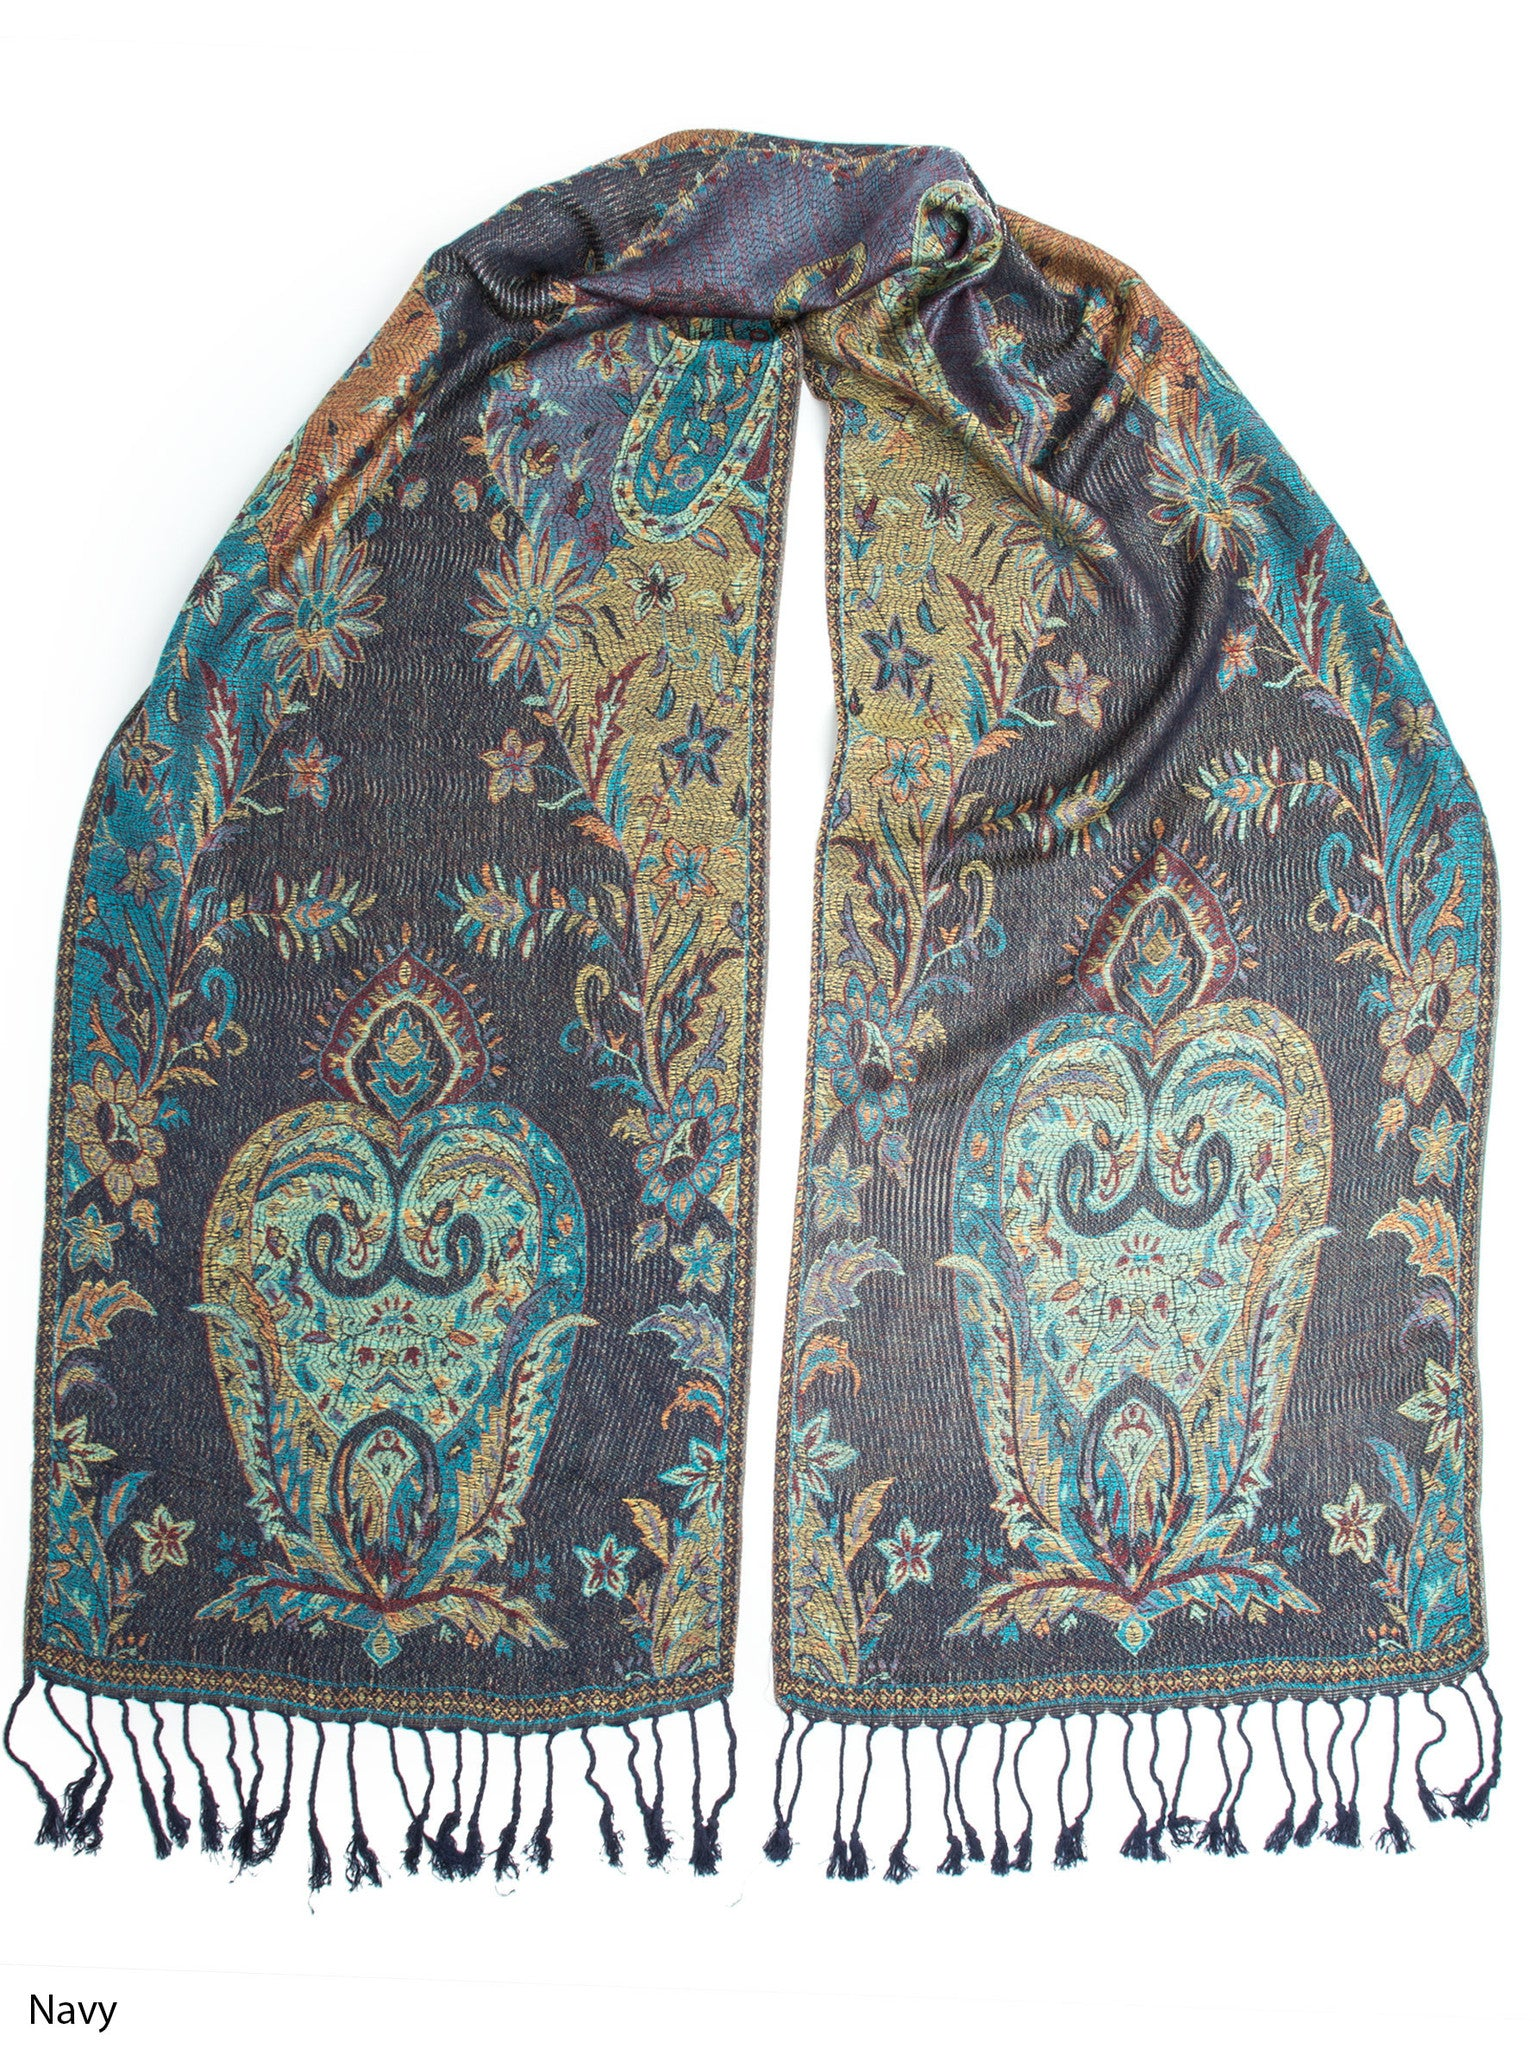 Scarves - Ramaya Scarf, Reversible Pashmina Indian Paisley Traditional Jacquard Scarf -(Navy) Bohomonde  - 5